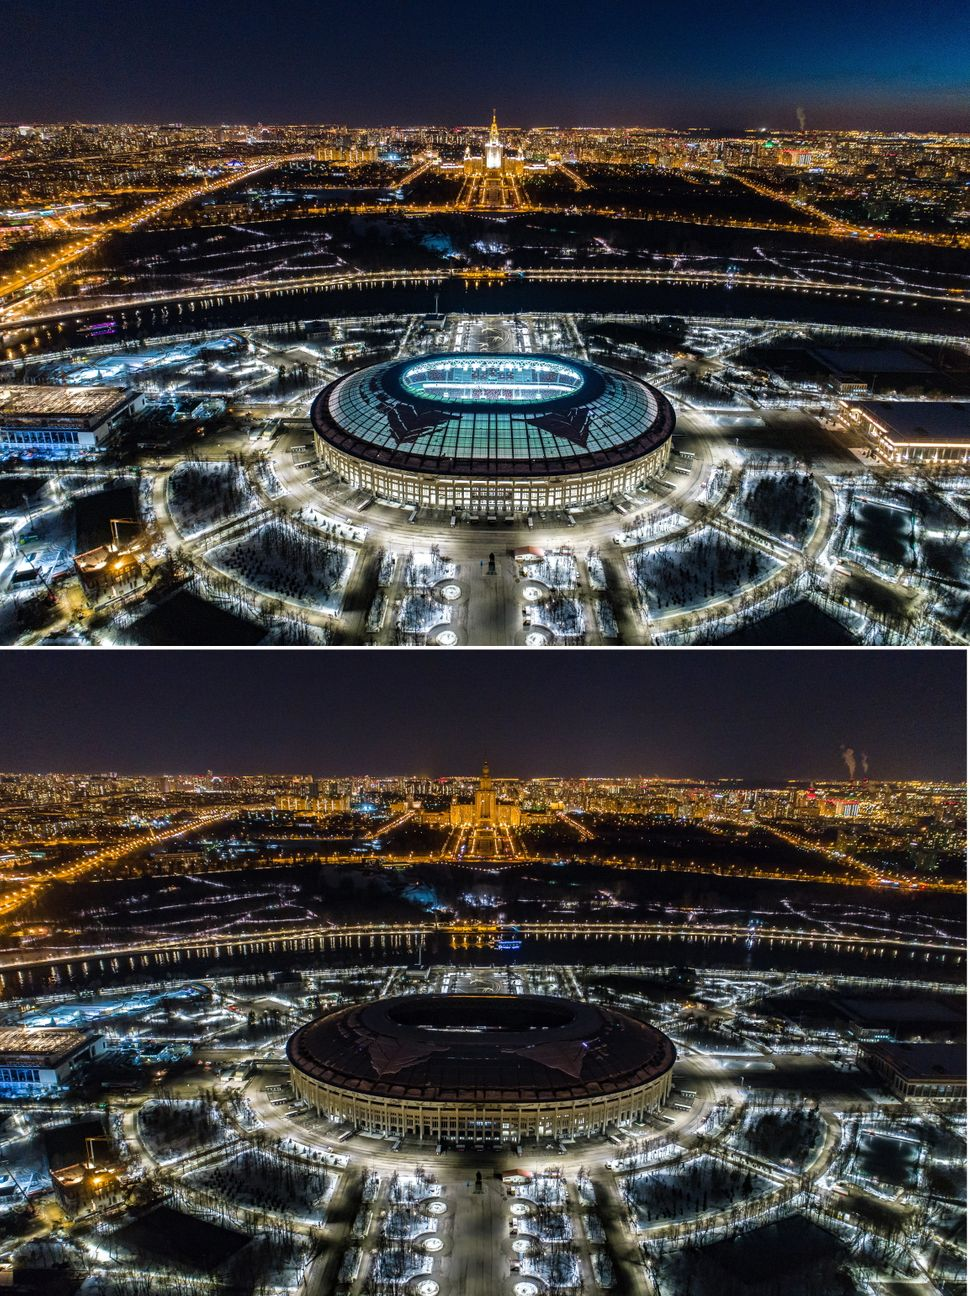 Moscow's Luzhniki Stadium, before and after its lights were turned off.